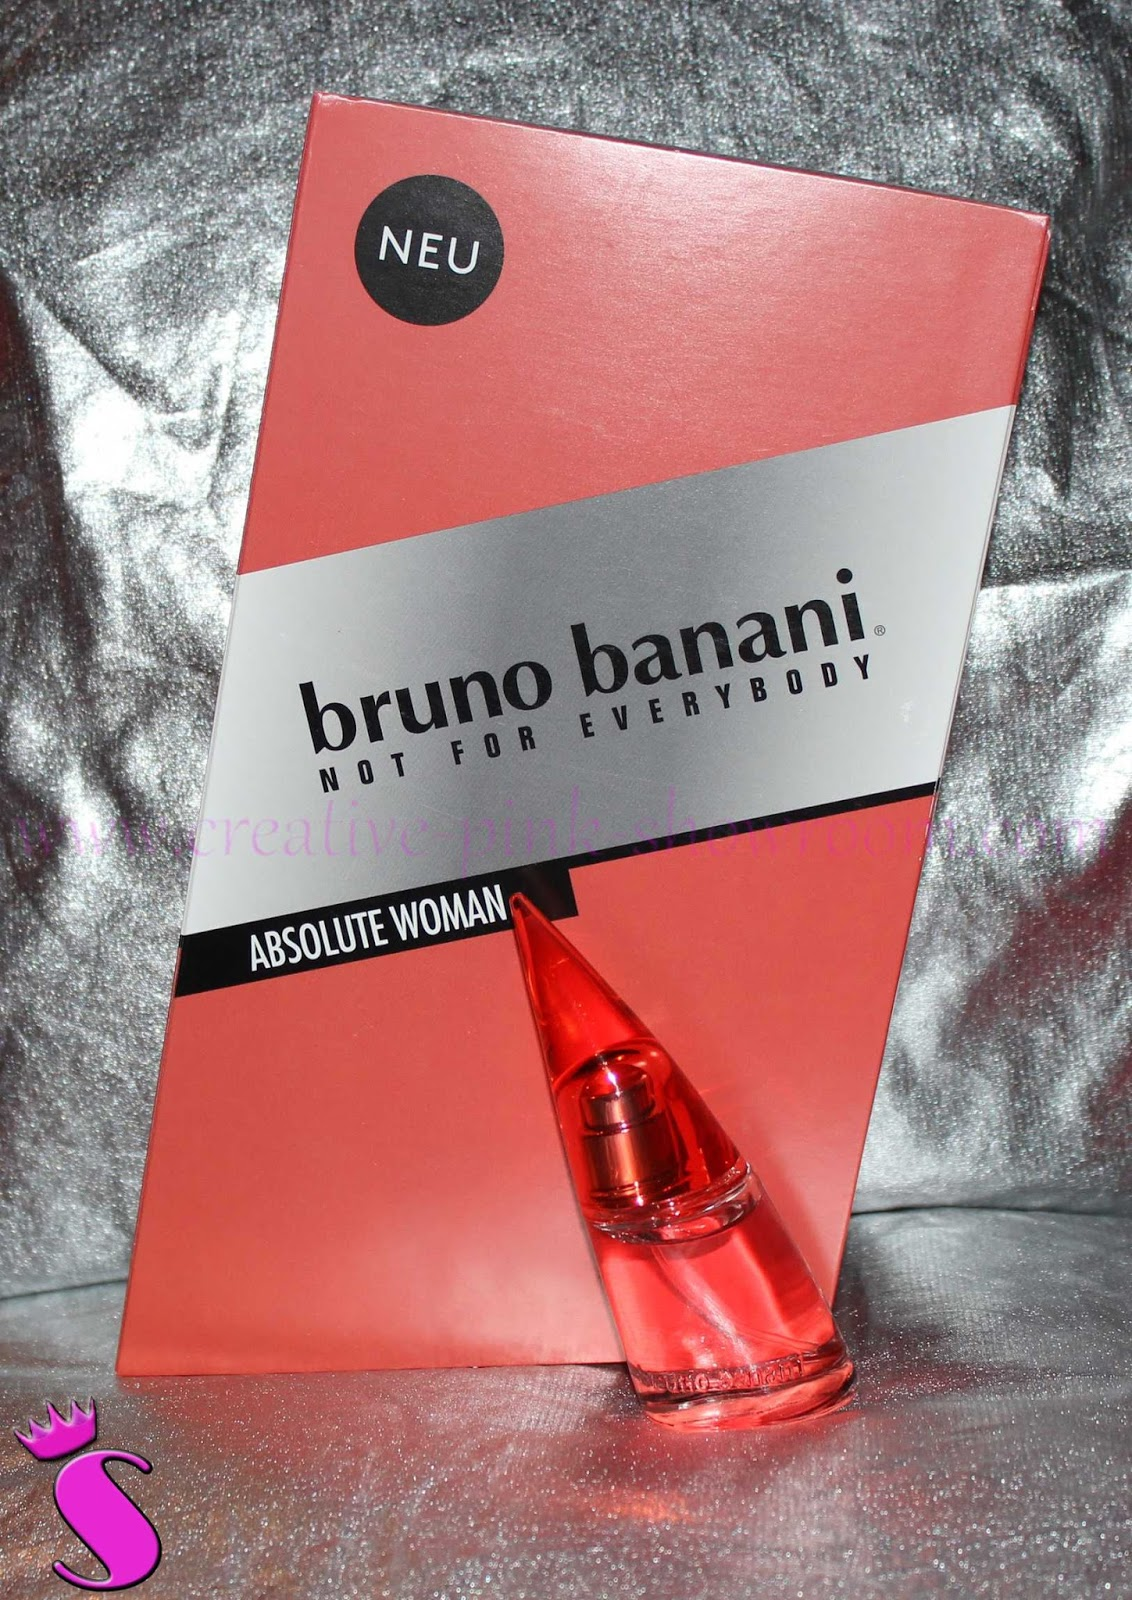 bruno banani Absolute Woman Eau de Toilette